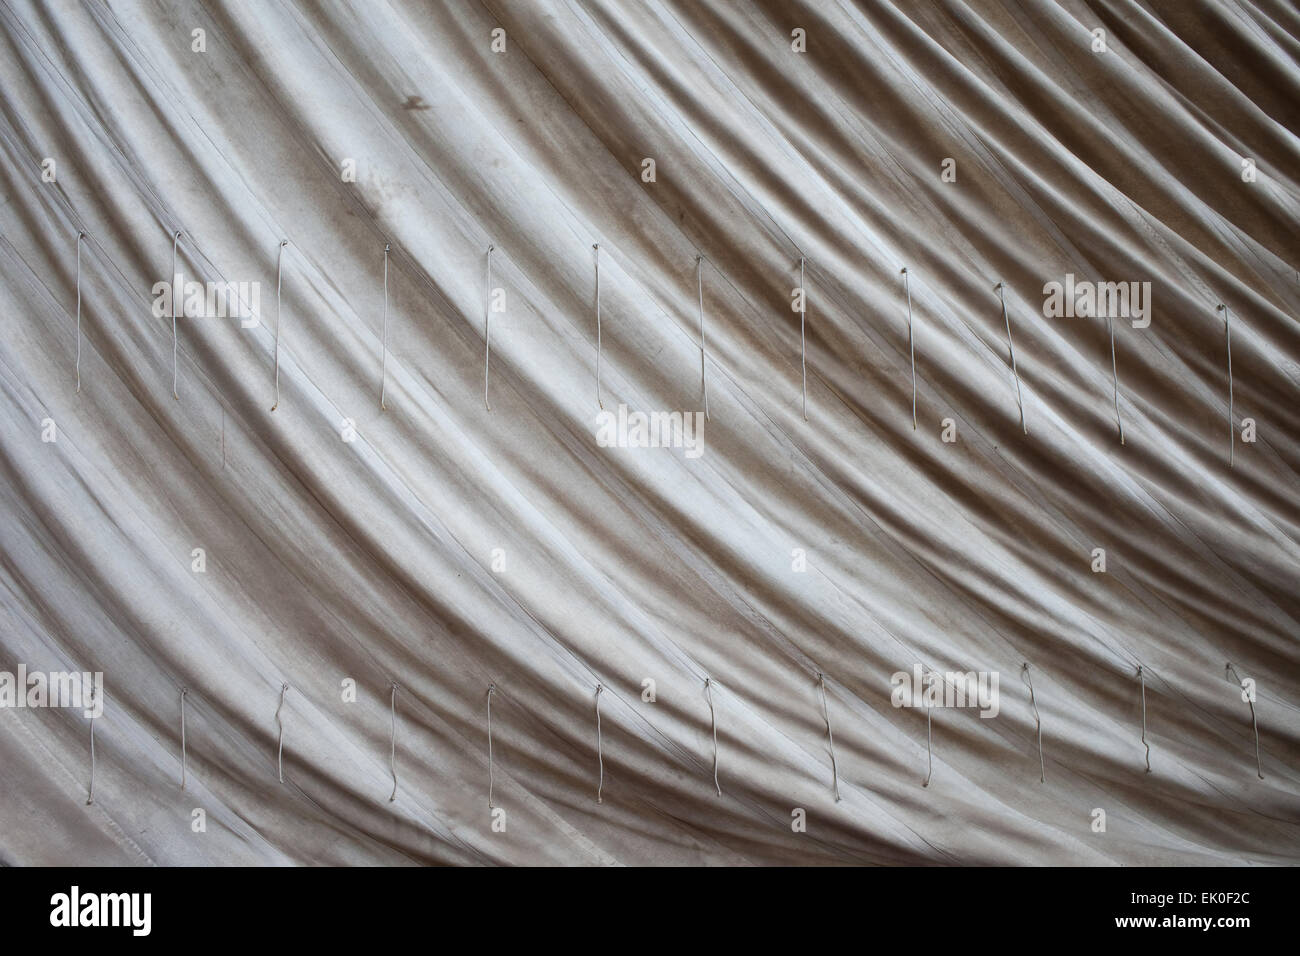 Old sailcloth background from a historic sailing boat. - Stock Image